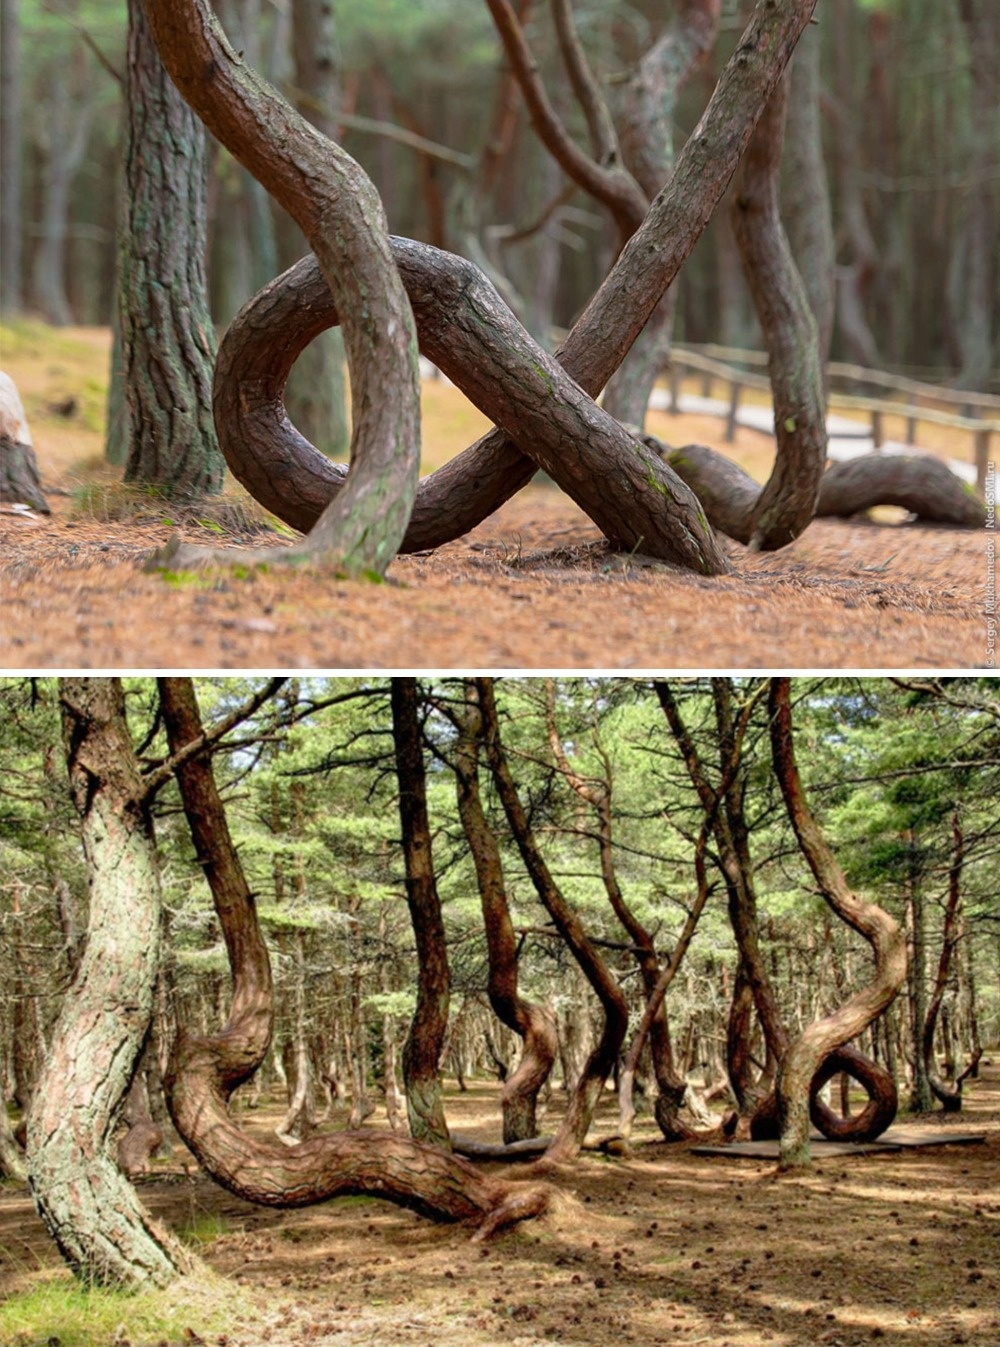 A dancing forest